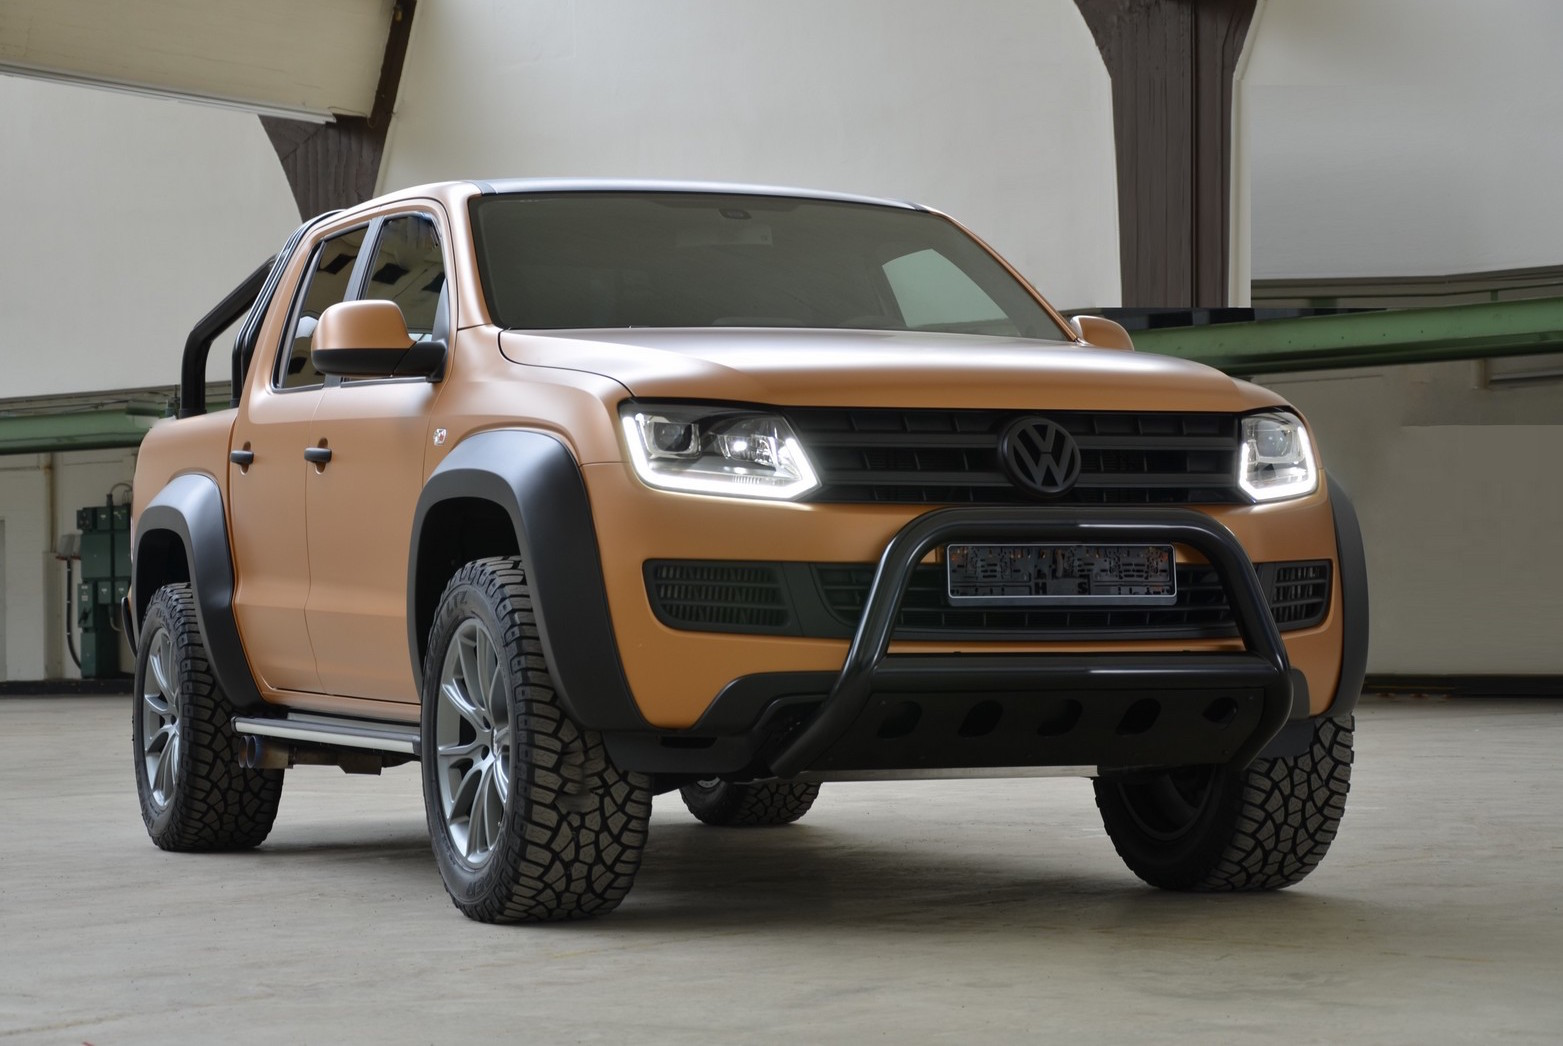 mtm announces volkswagen amarok v8 desert edition. Black Bedroom Furniture Sets. Home Design Ideas